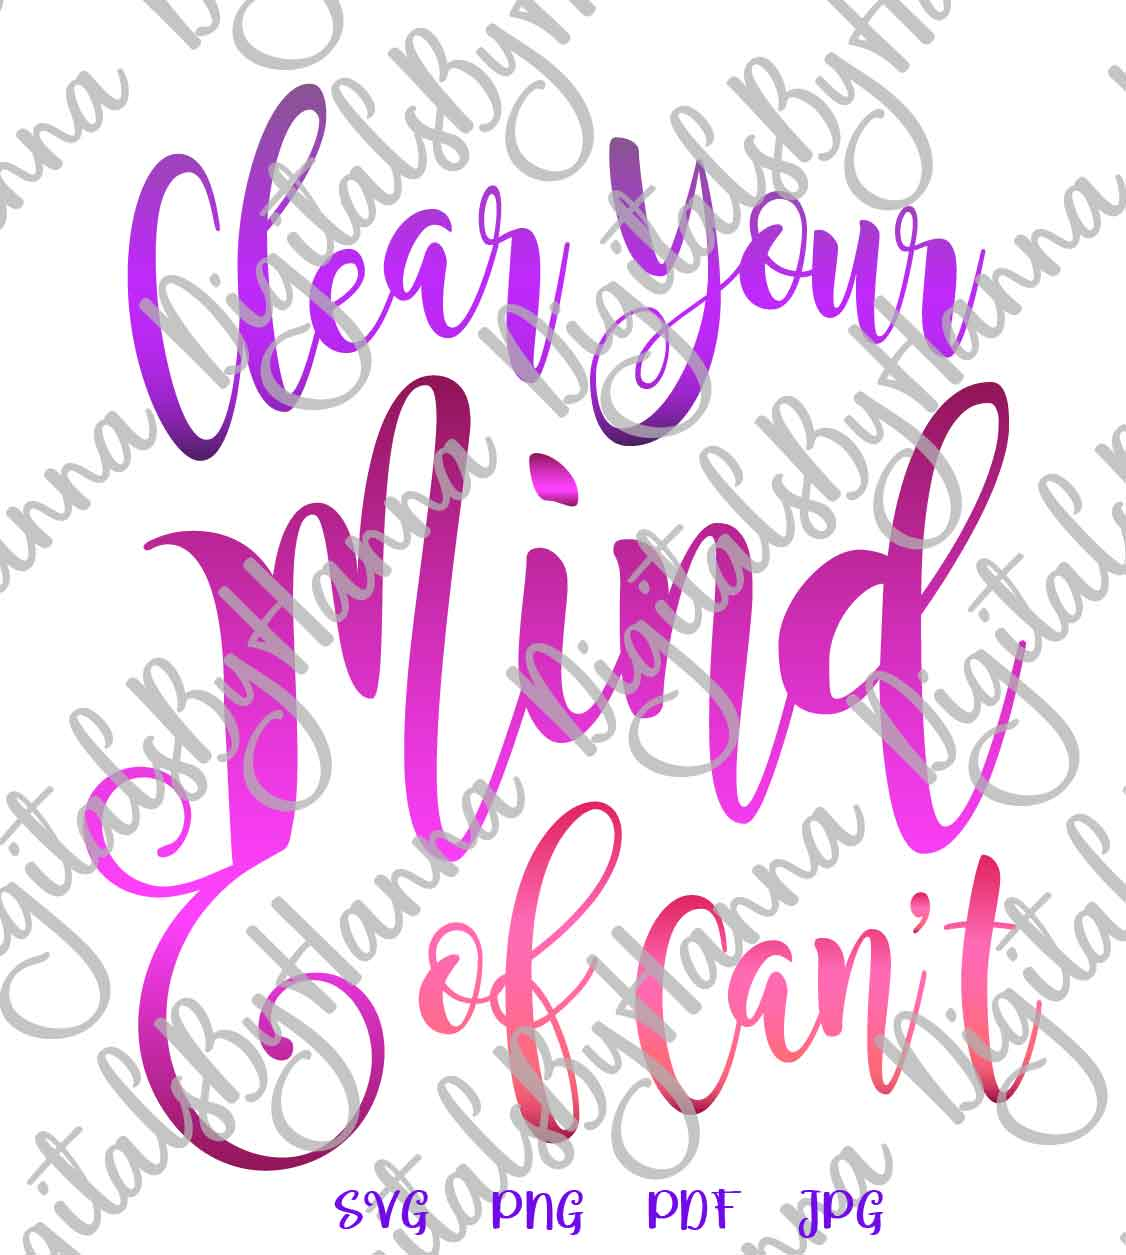 Clear Your Mind of Can't Inspirational Cut File SVG DXF PNG example image 2